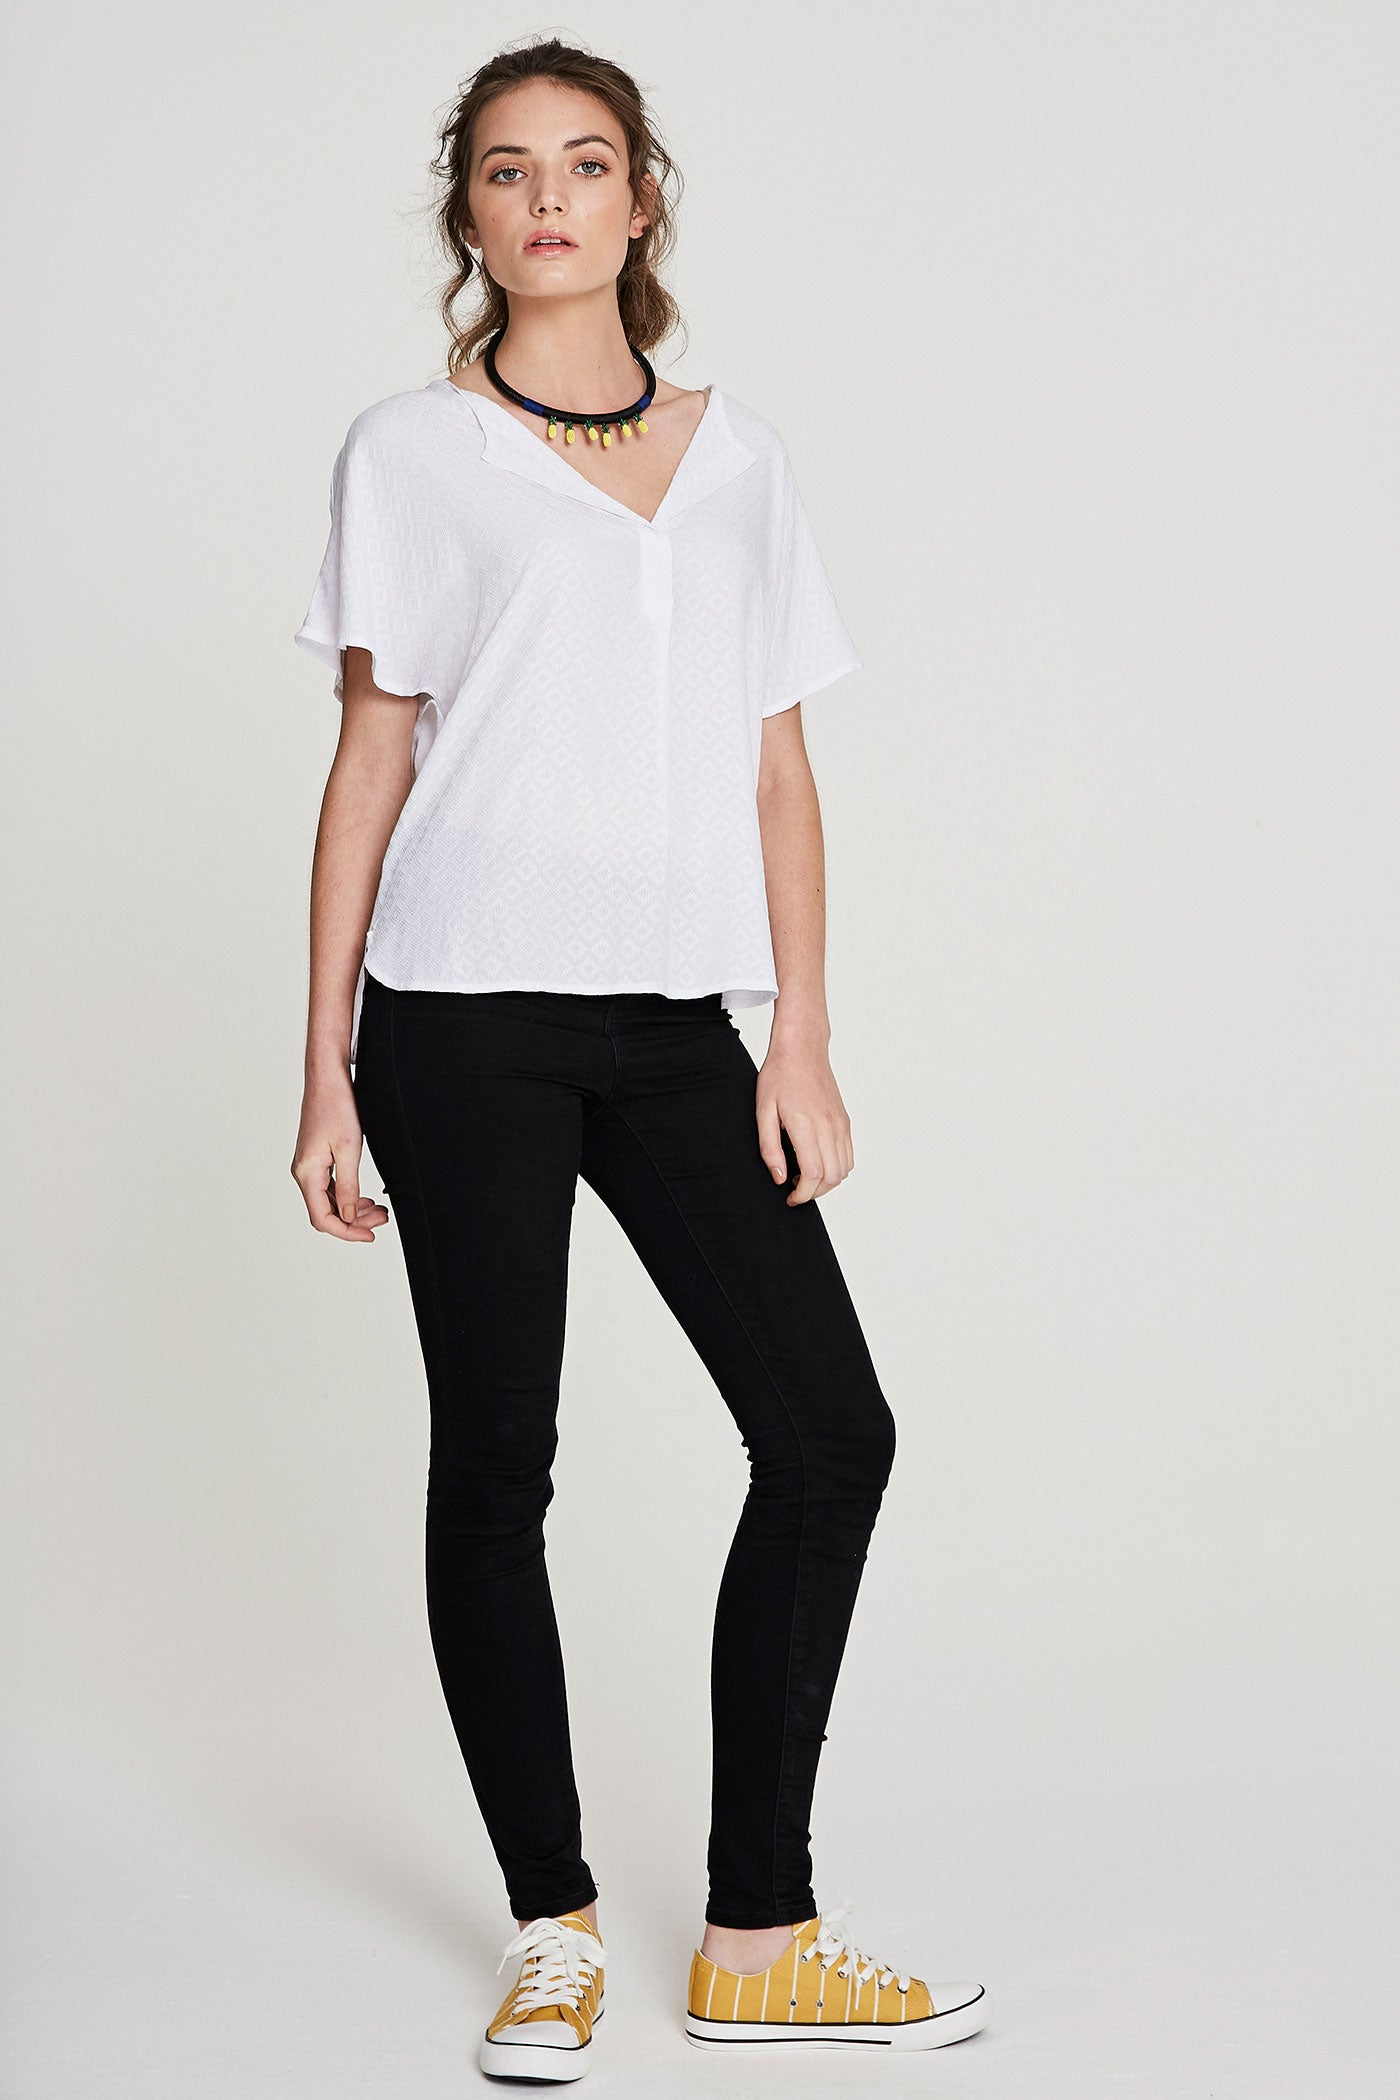 Wren Top - White Embroidered